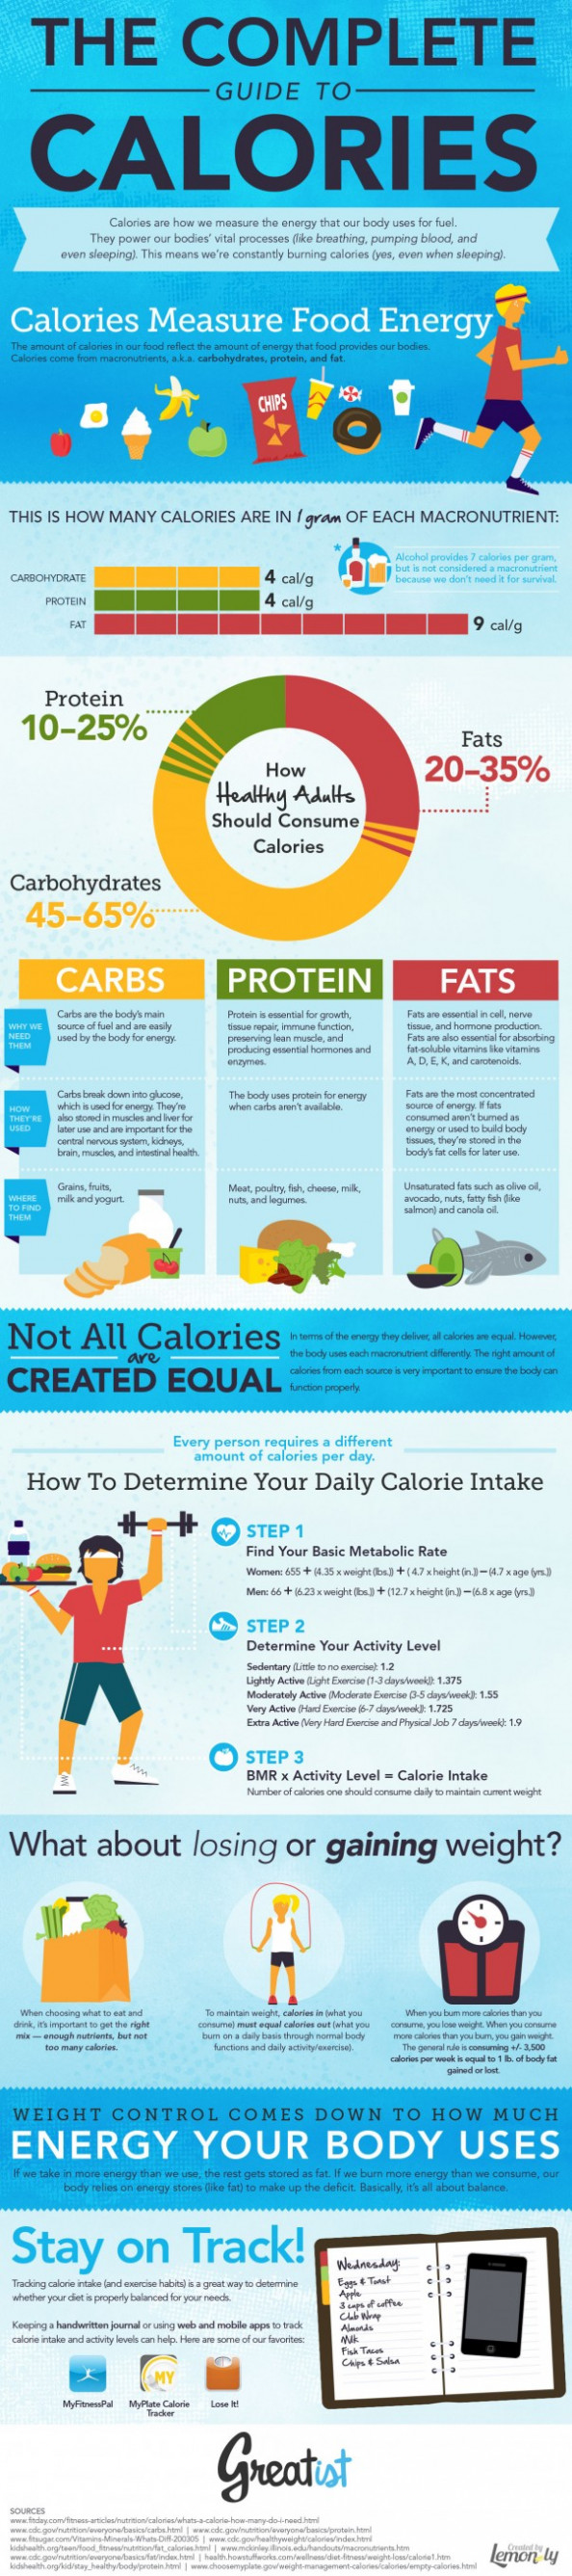 The Complete Guide to Calories Infographic